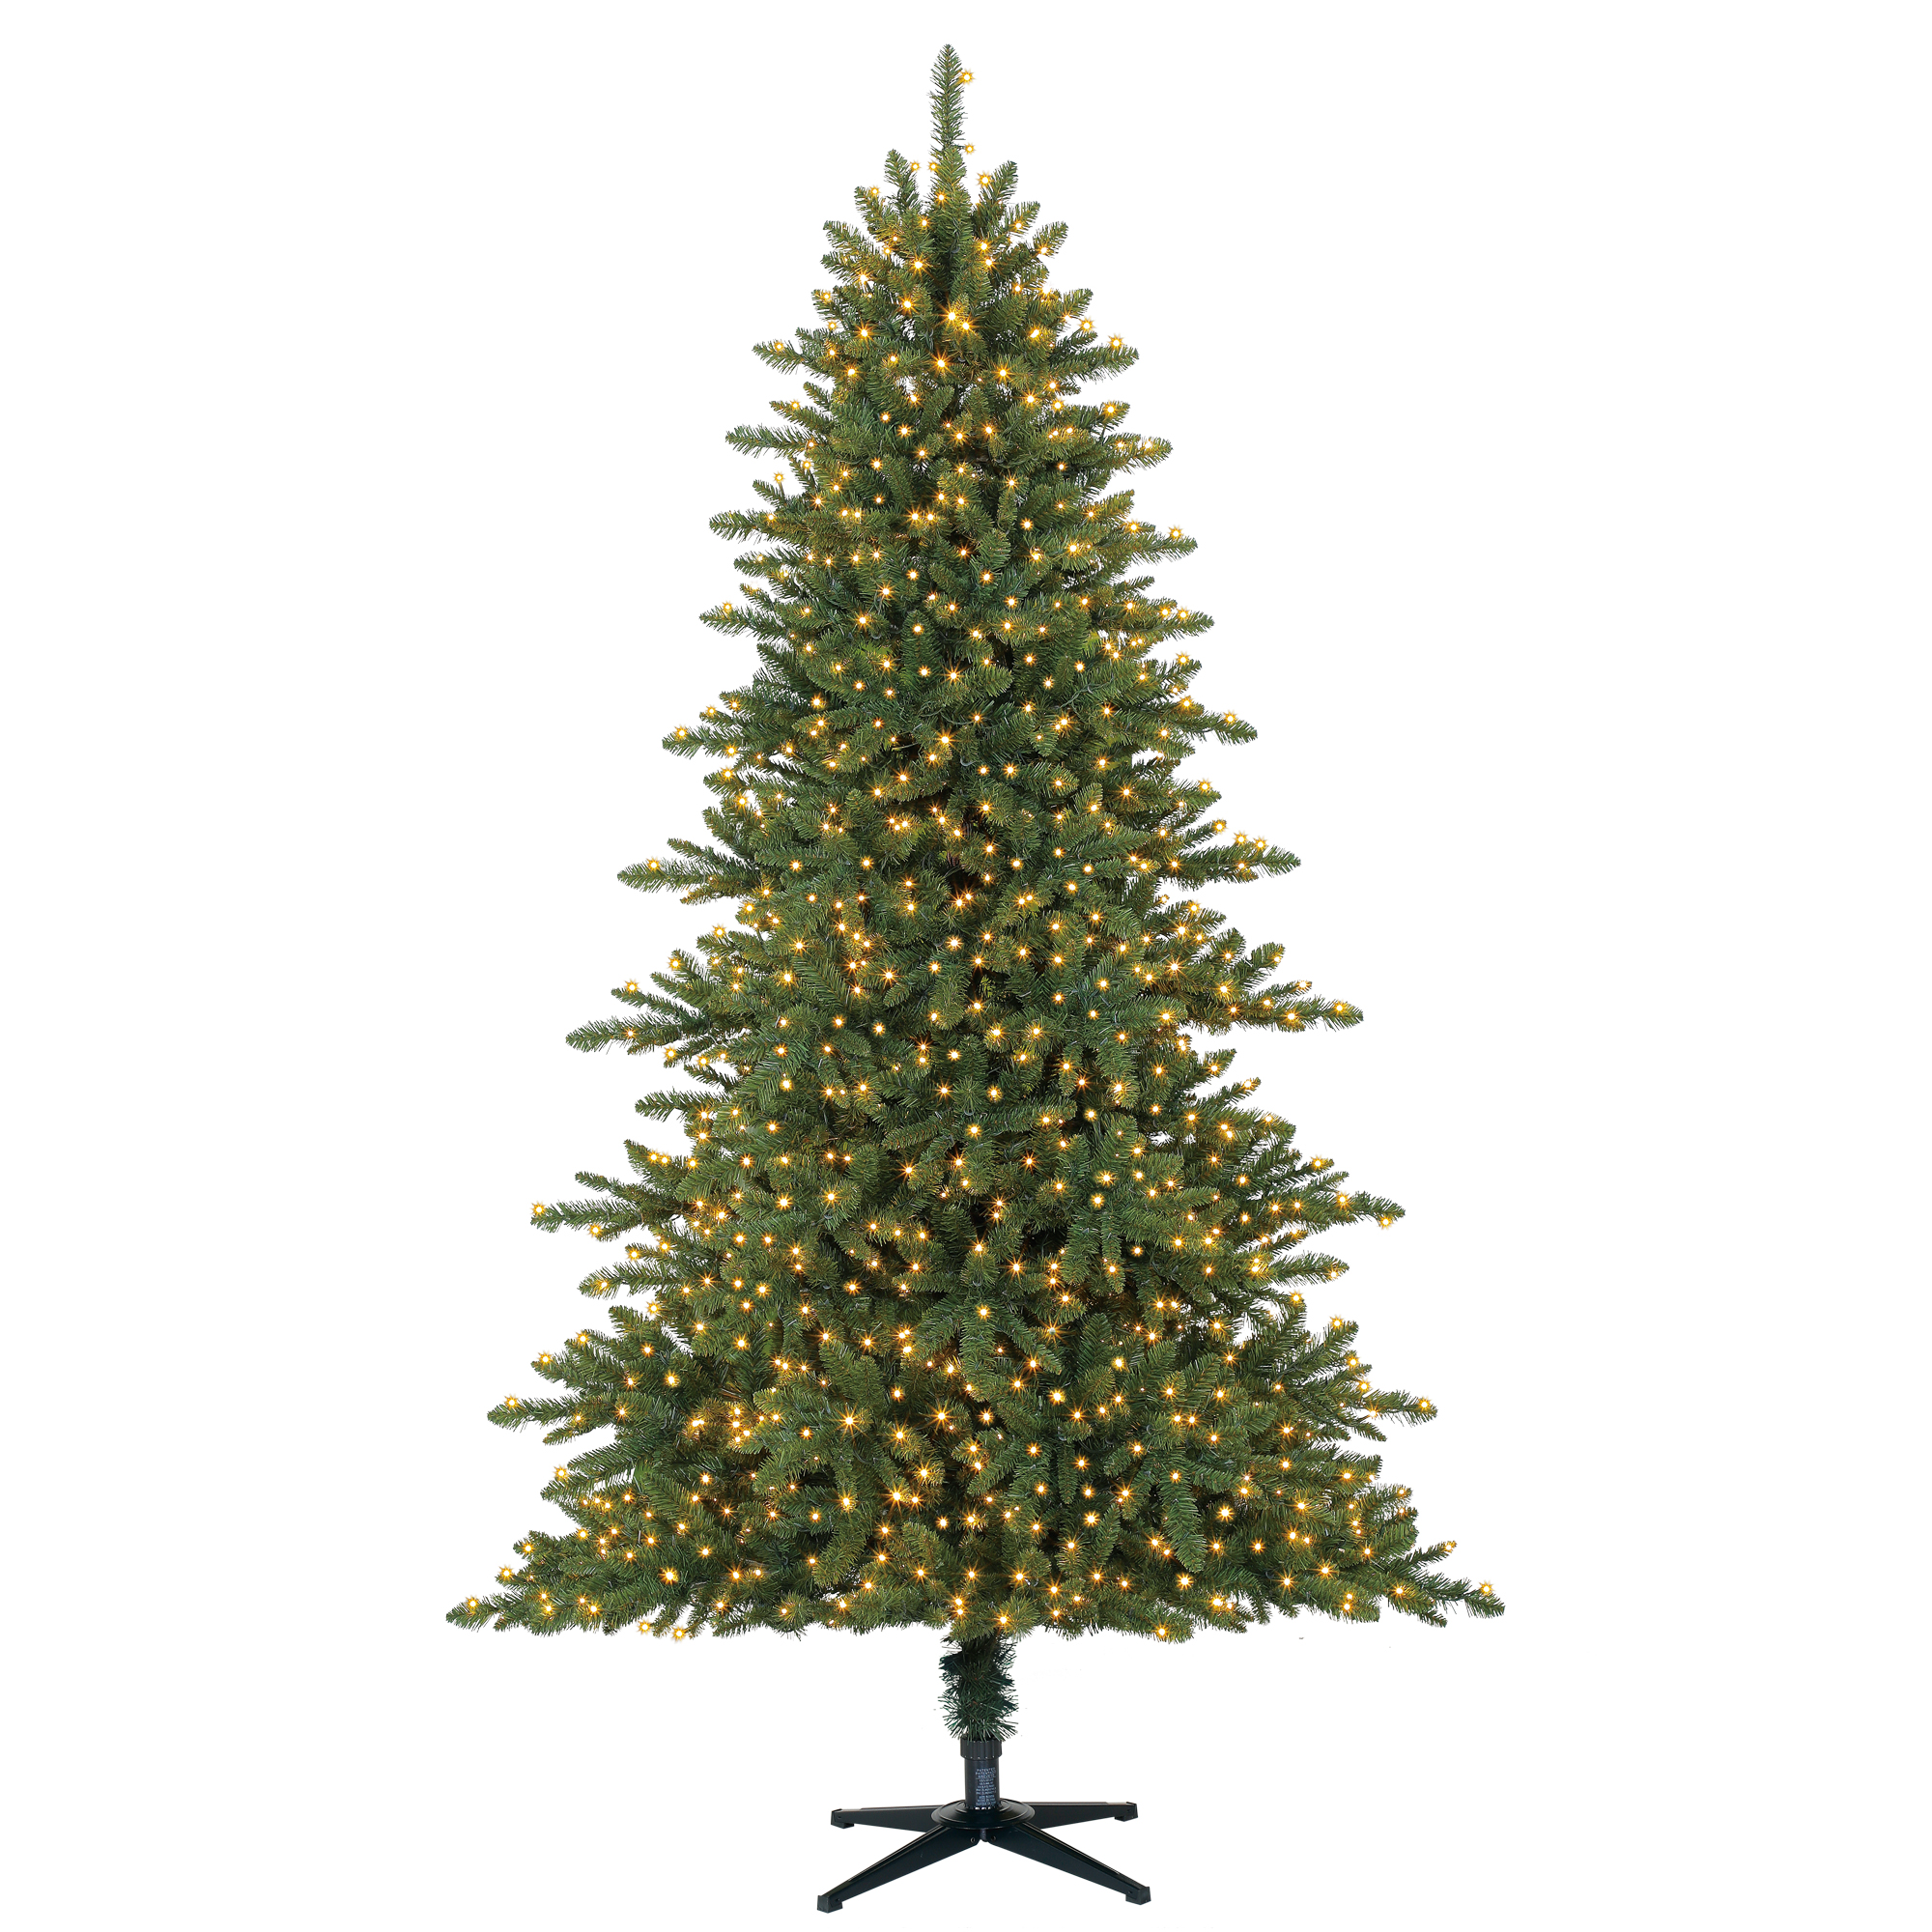 Holiday Time 7.5ft Pre-Lit Milford Pine Quick Set Artificial Christmas Tree Clear 1500 LED Clear Lights - Green